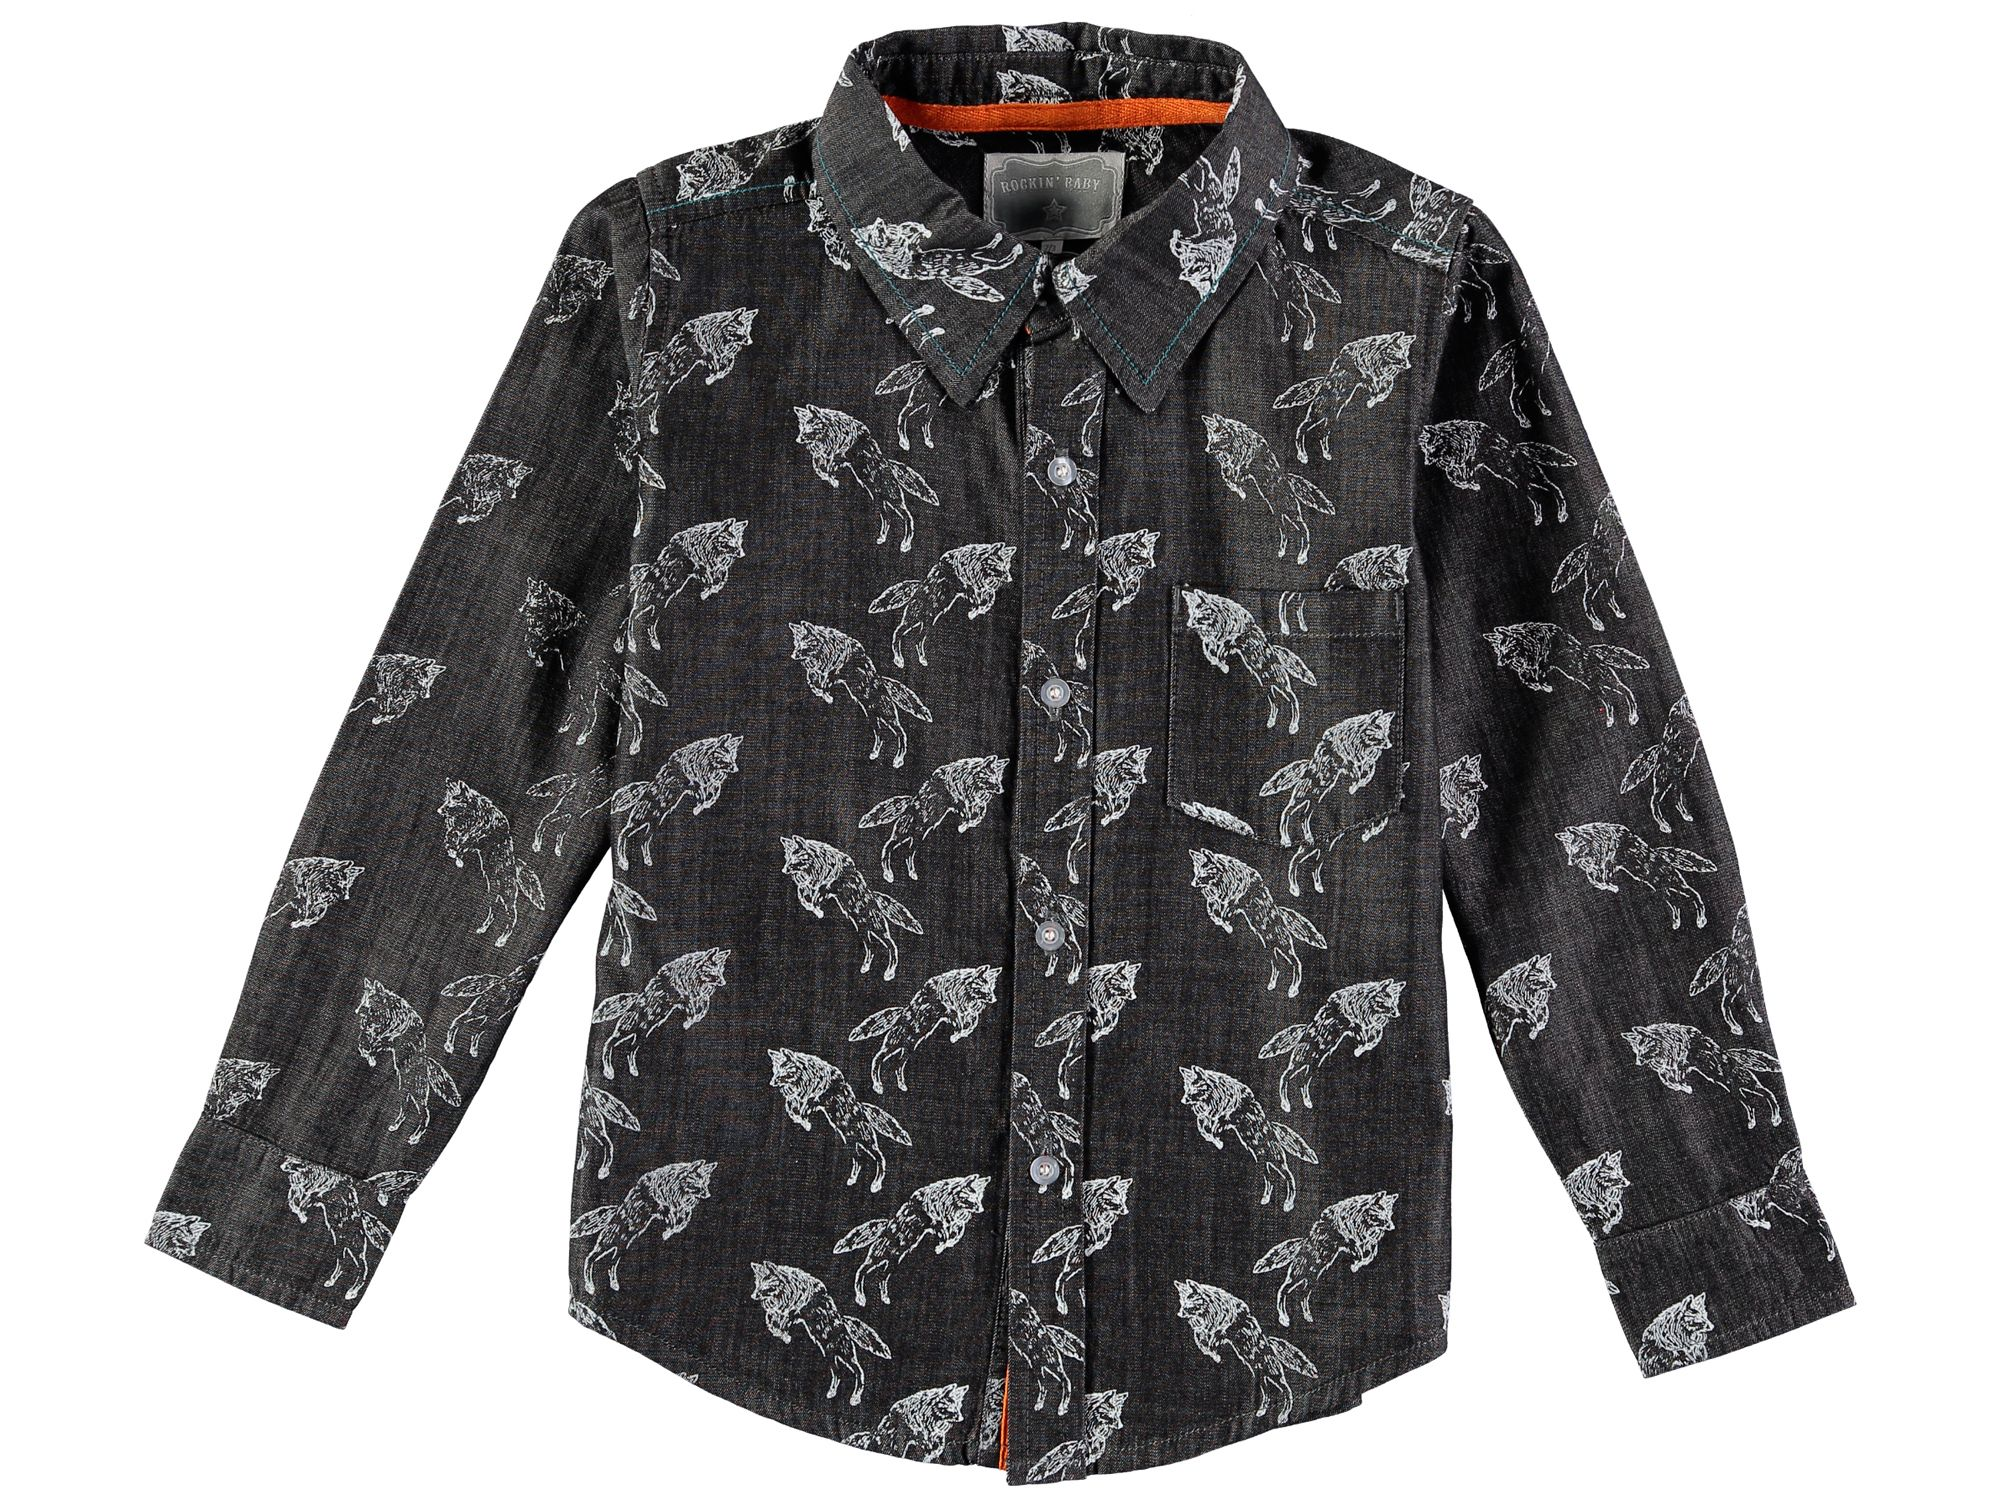 Rockin' Baby Rockin' Baby Boys Long Sleeve Wolf Print Shirt, Grey